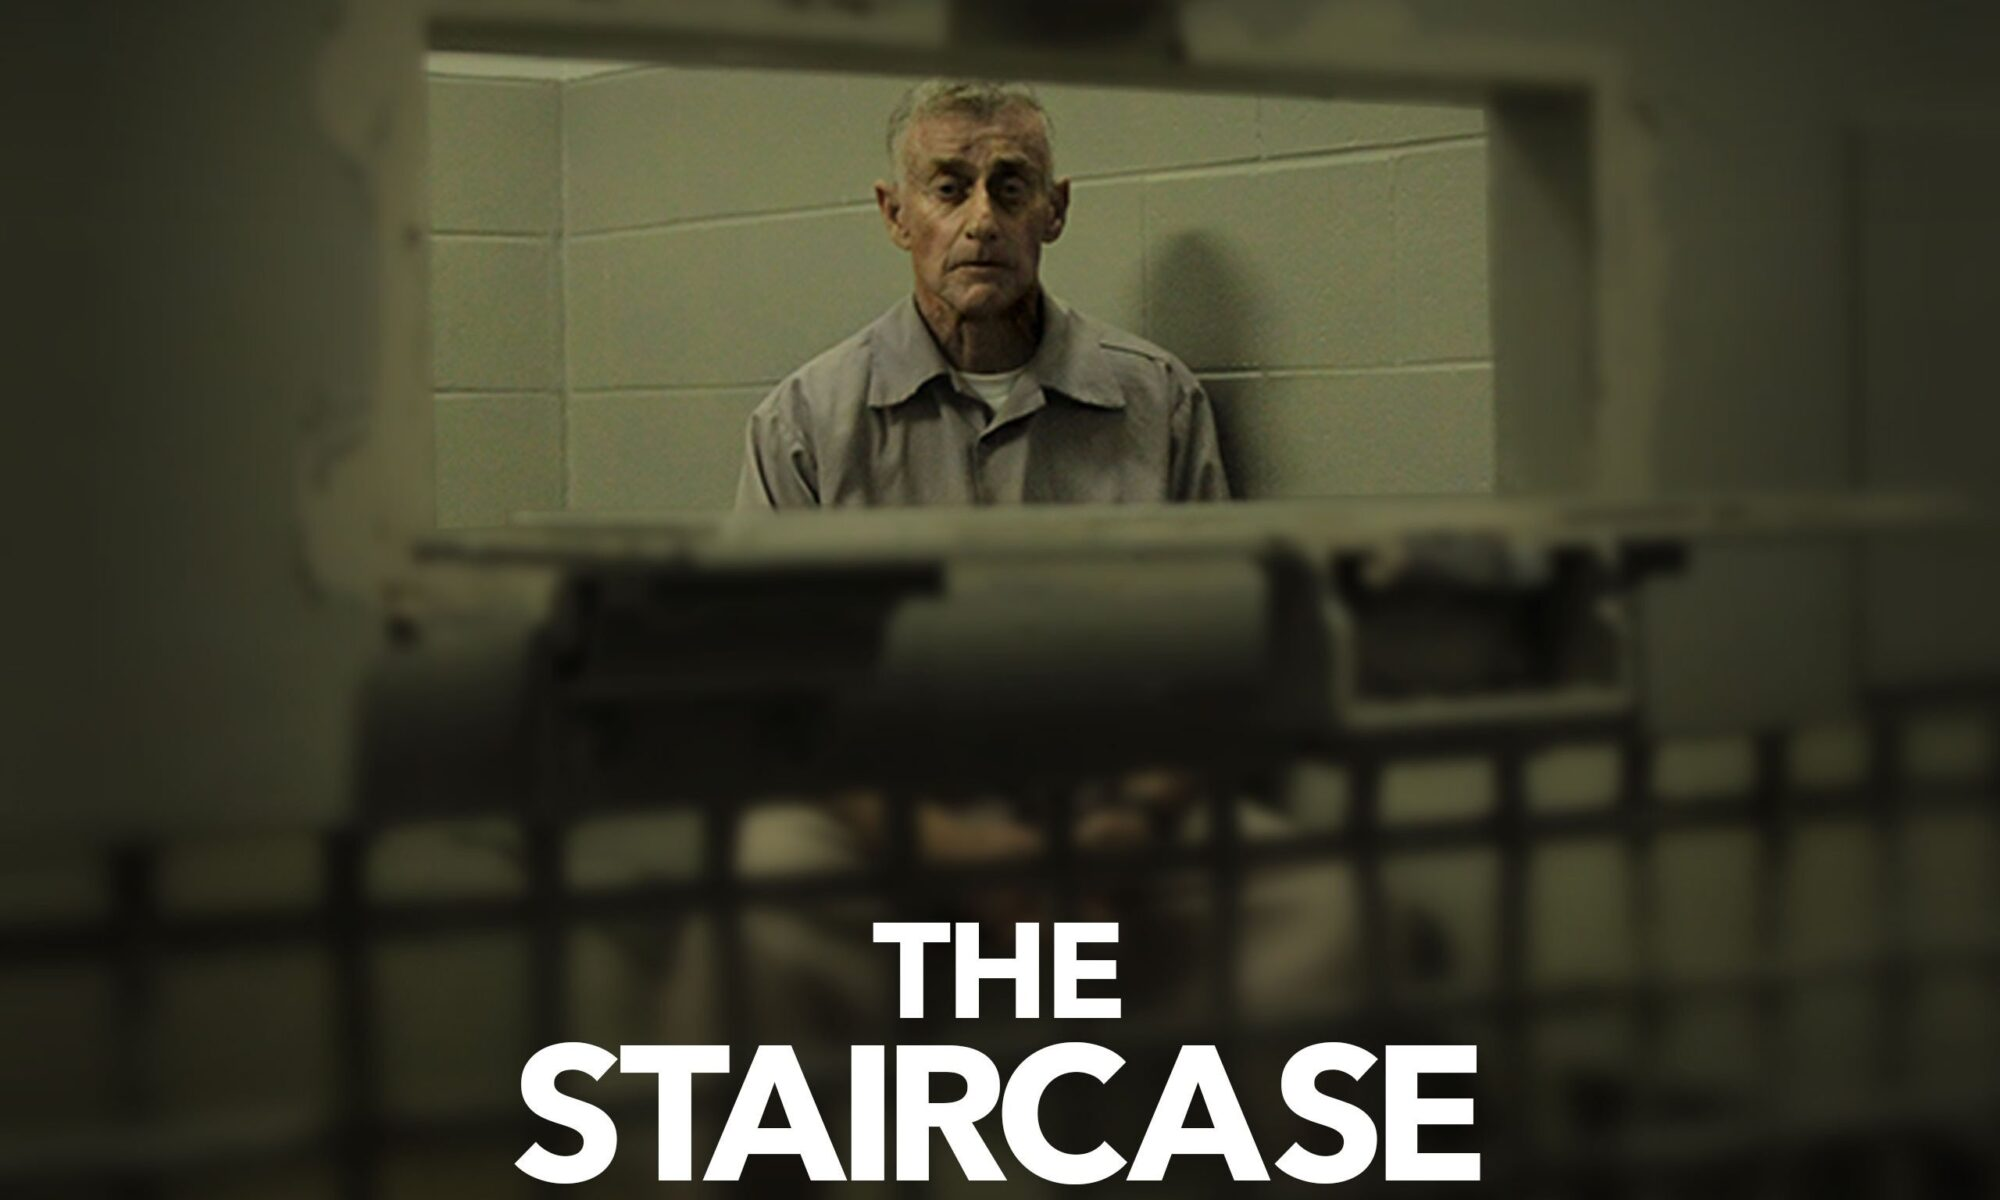 Carátula del film The staircase